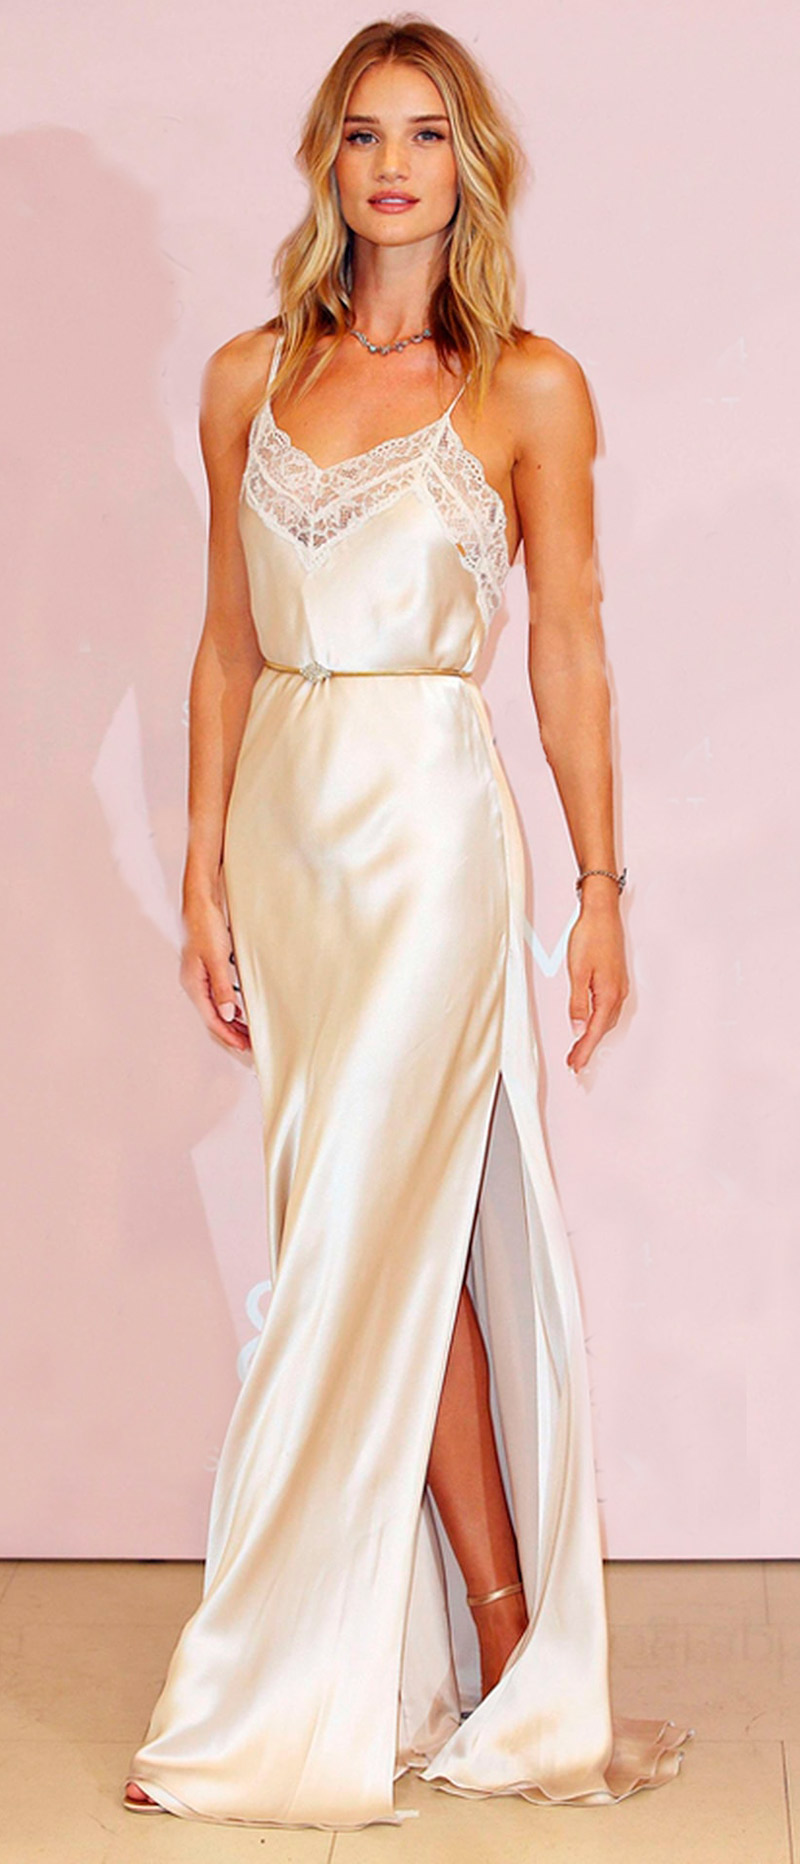 Como usa slip dress no casamento